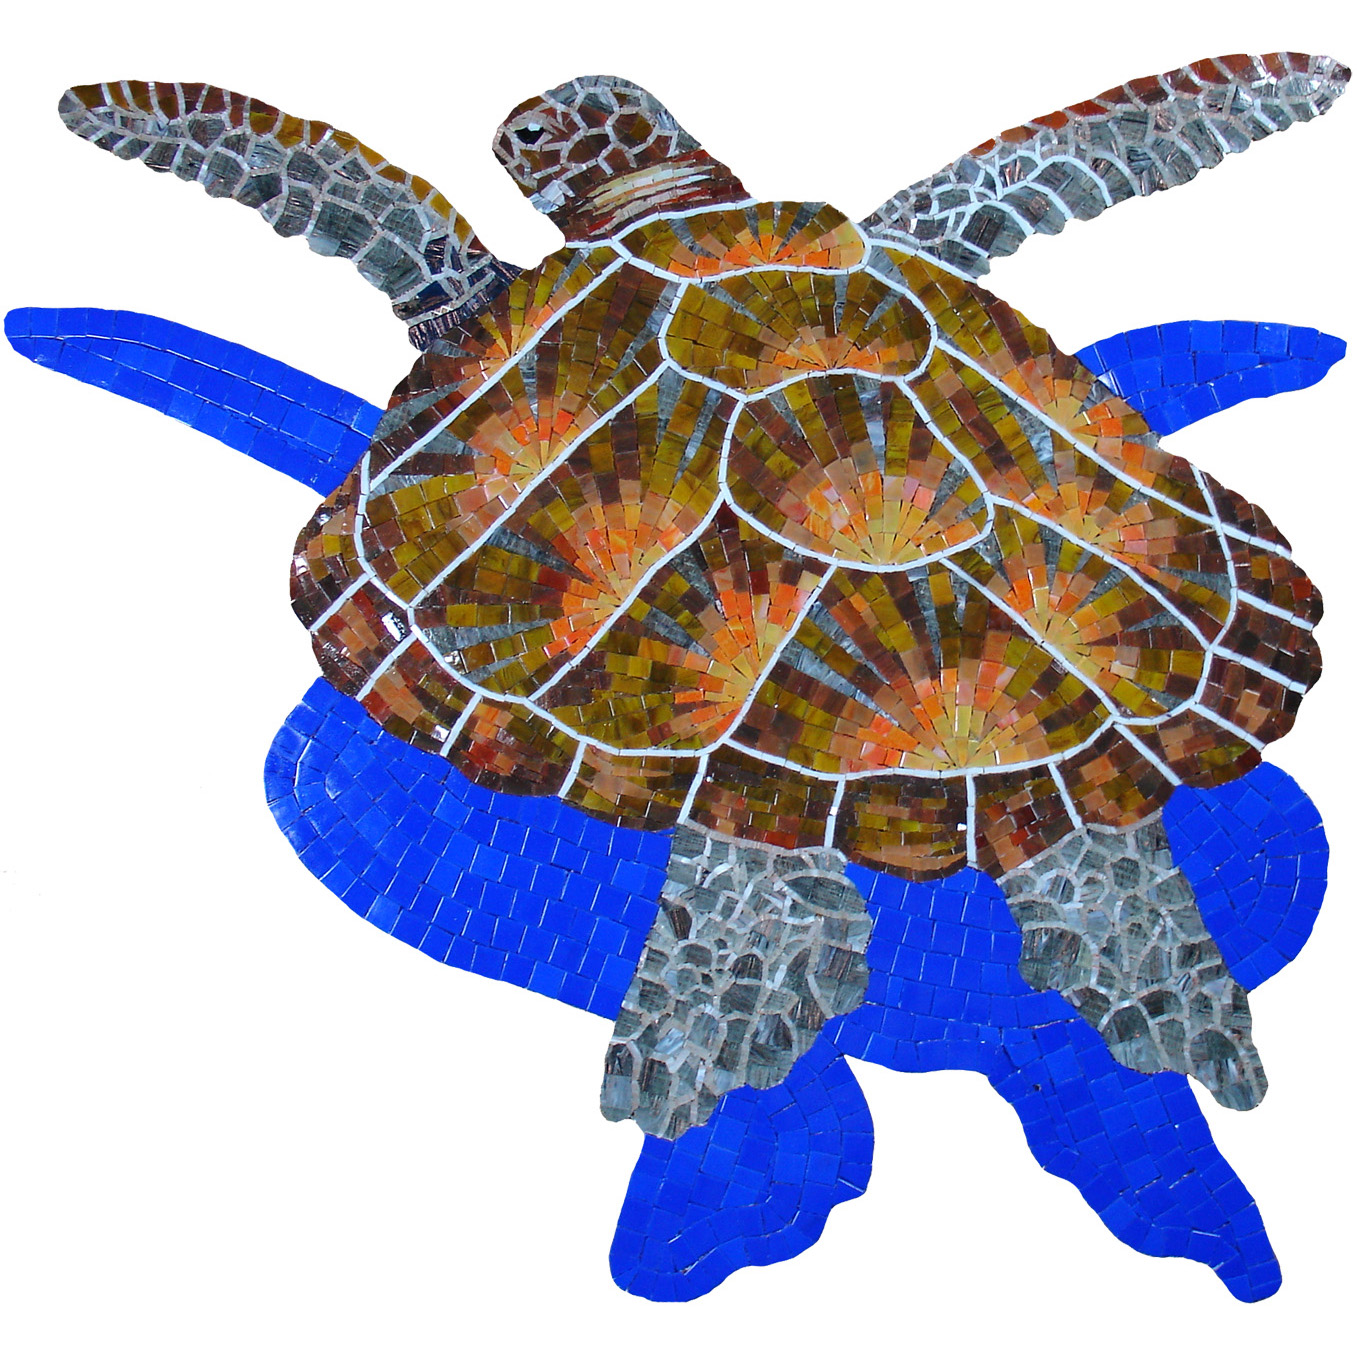 "Loggerhead Glass Mosaic Turtle Large, with shadow, 36 x 38"", 1 mural"